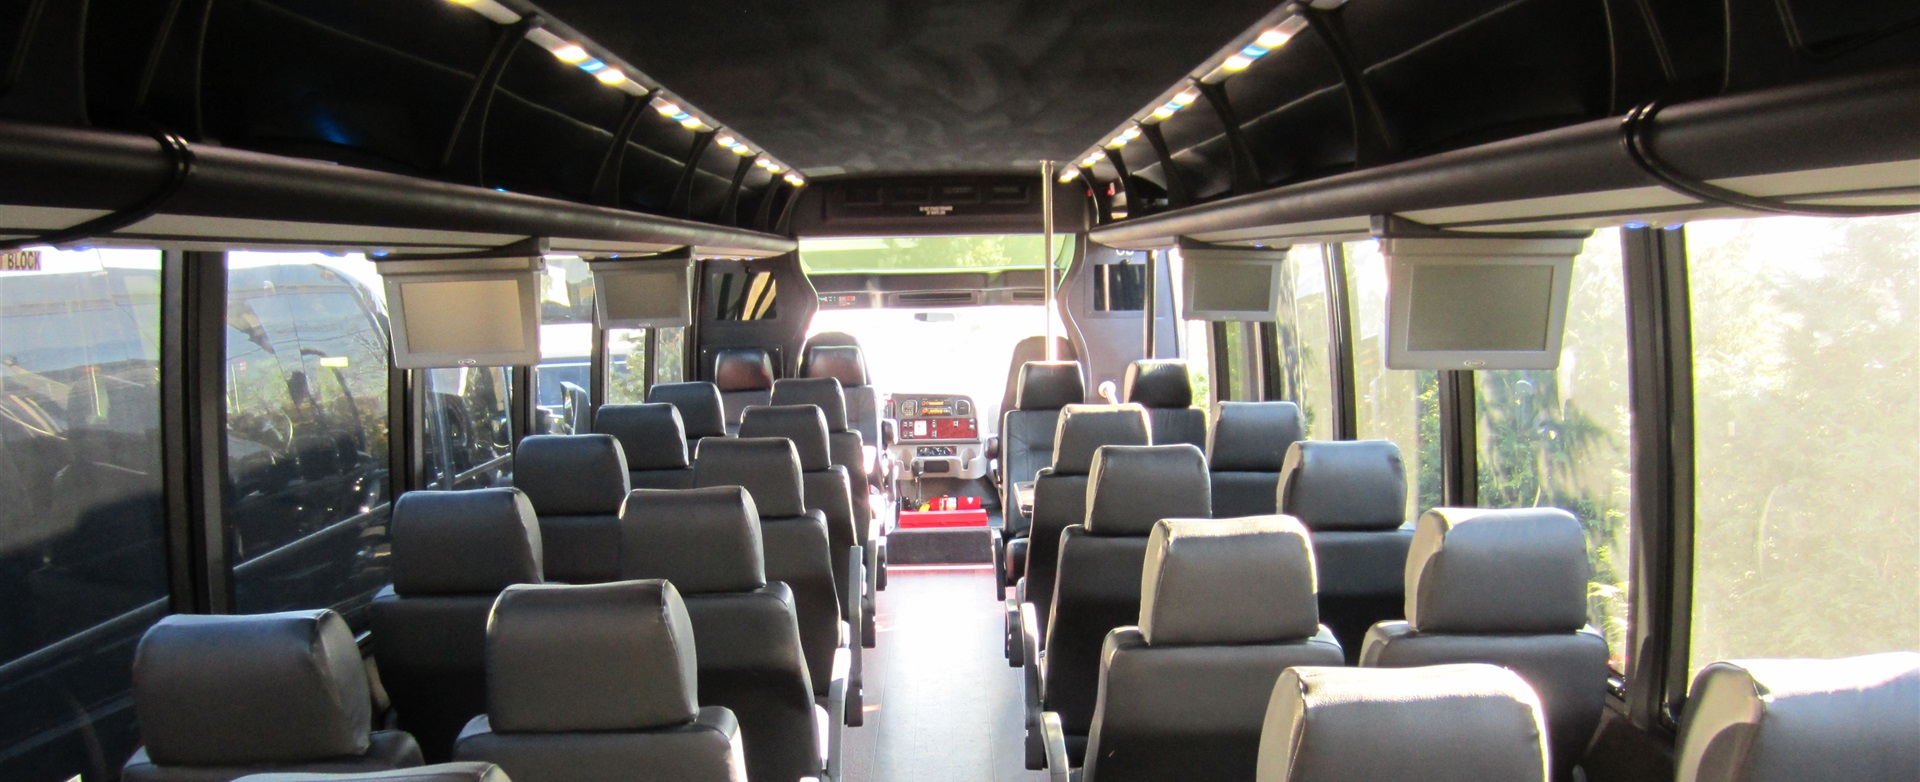 31 Passenger Shuttle Bus